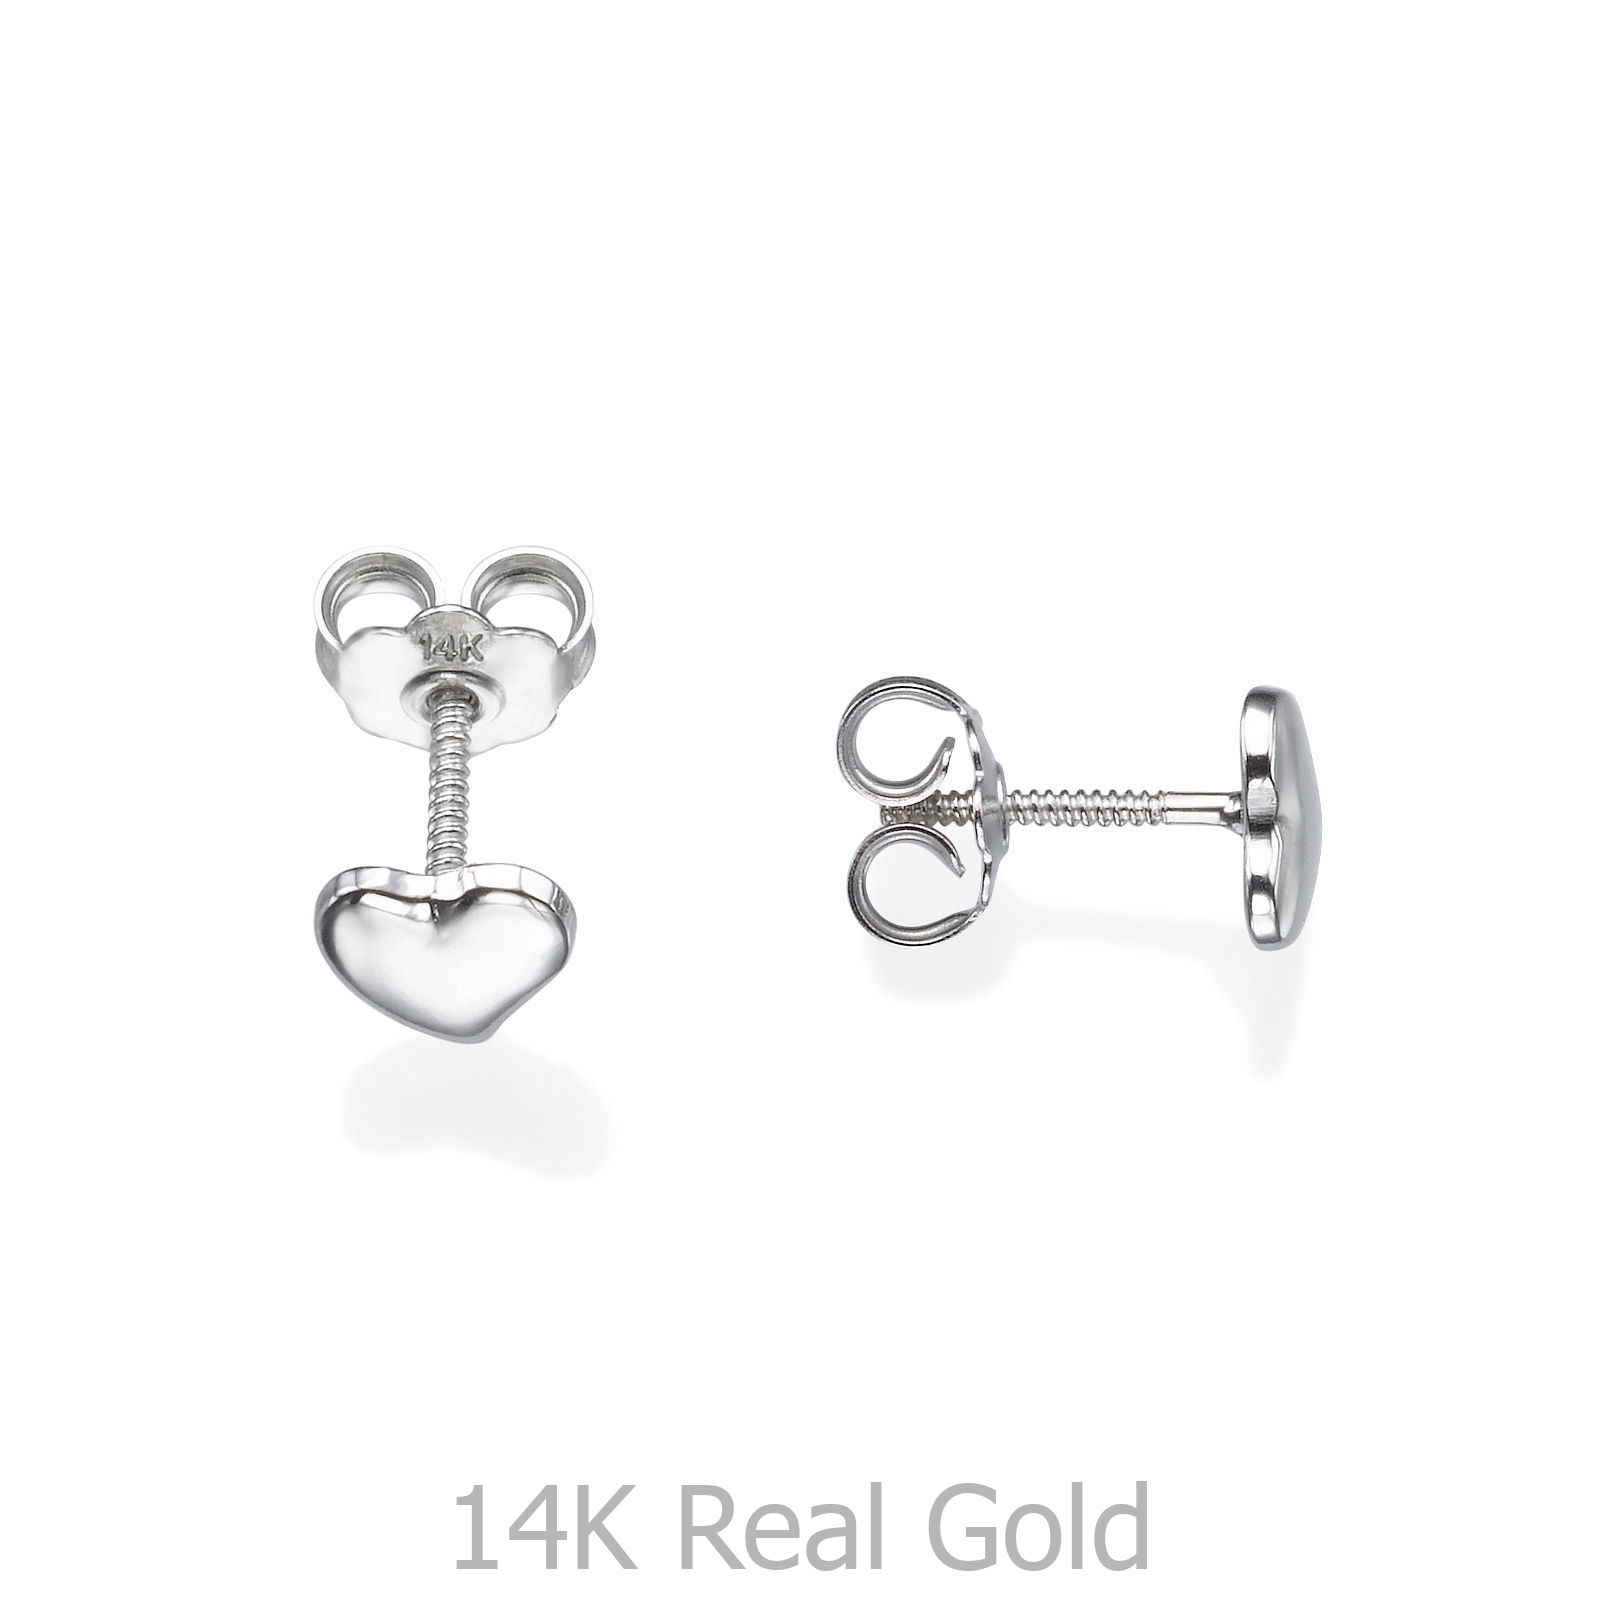 c9a1021aa 14K Gold Studs Heart Baby Earrings Jewelry Valentine Gifts Children ...